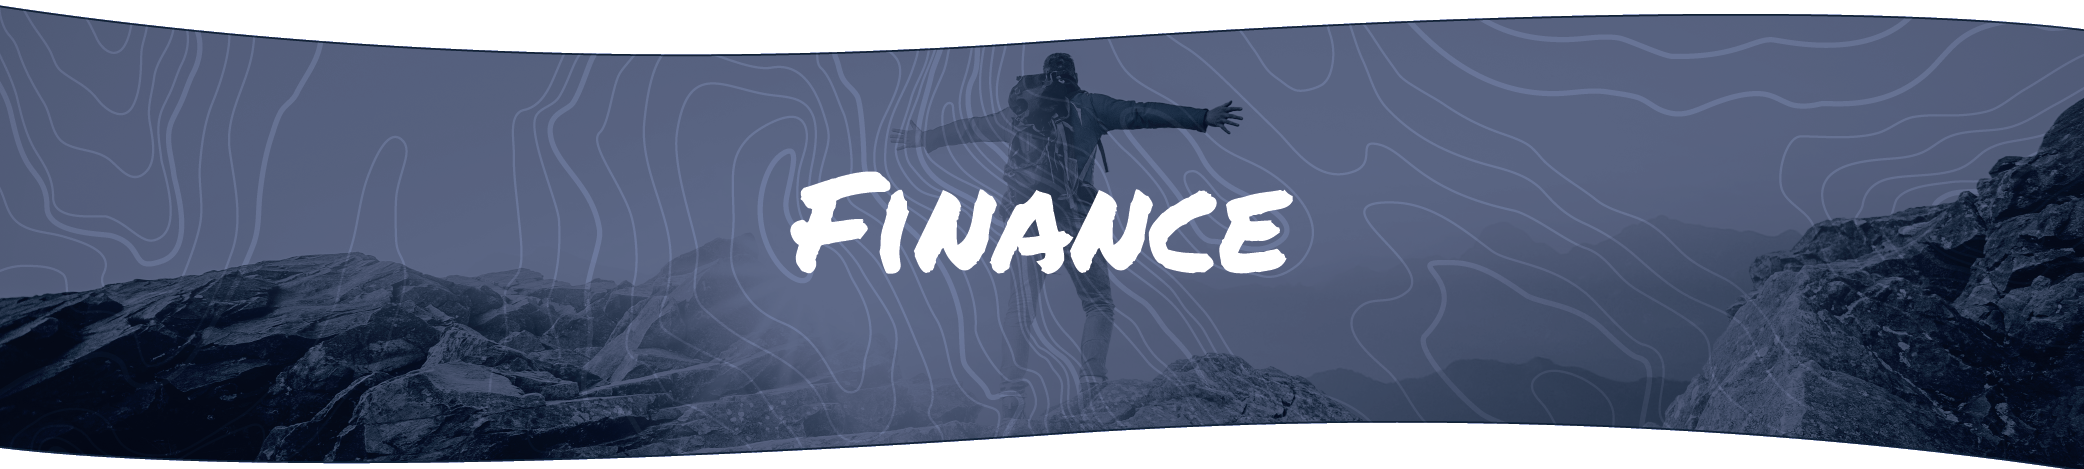 finance-02.png